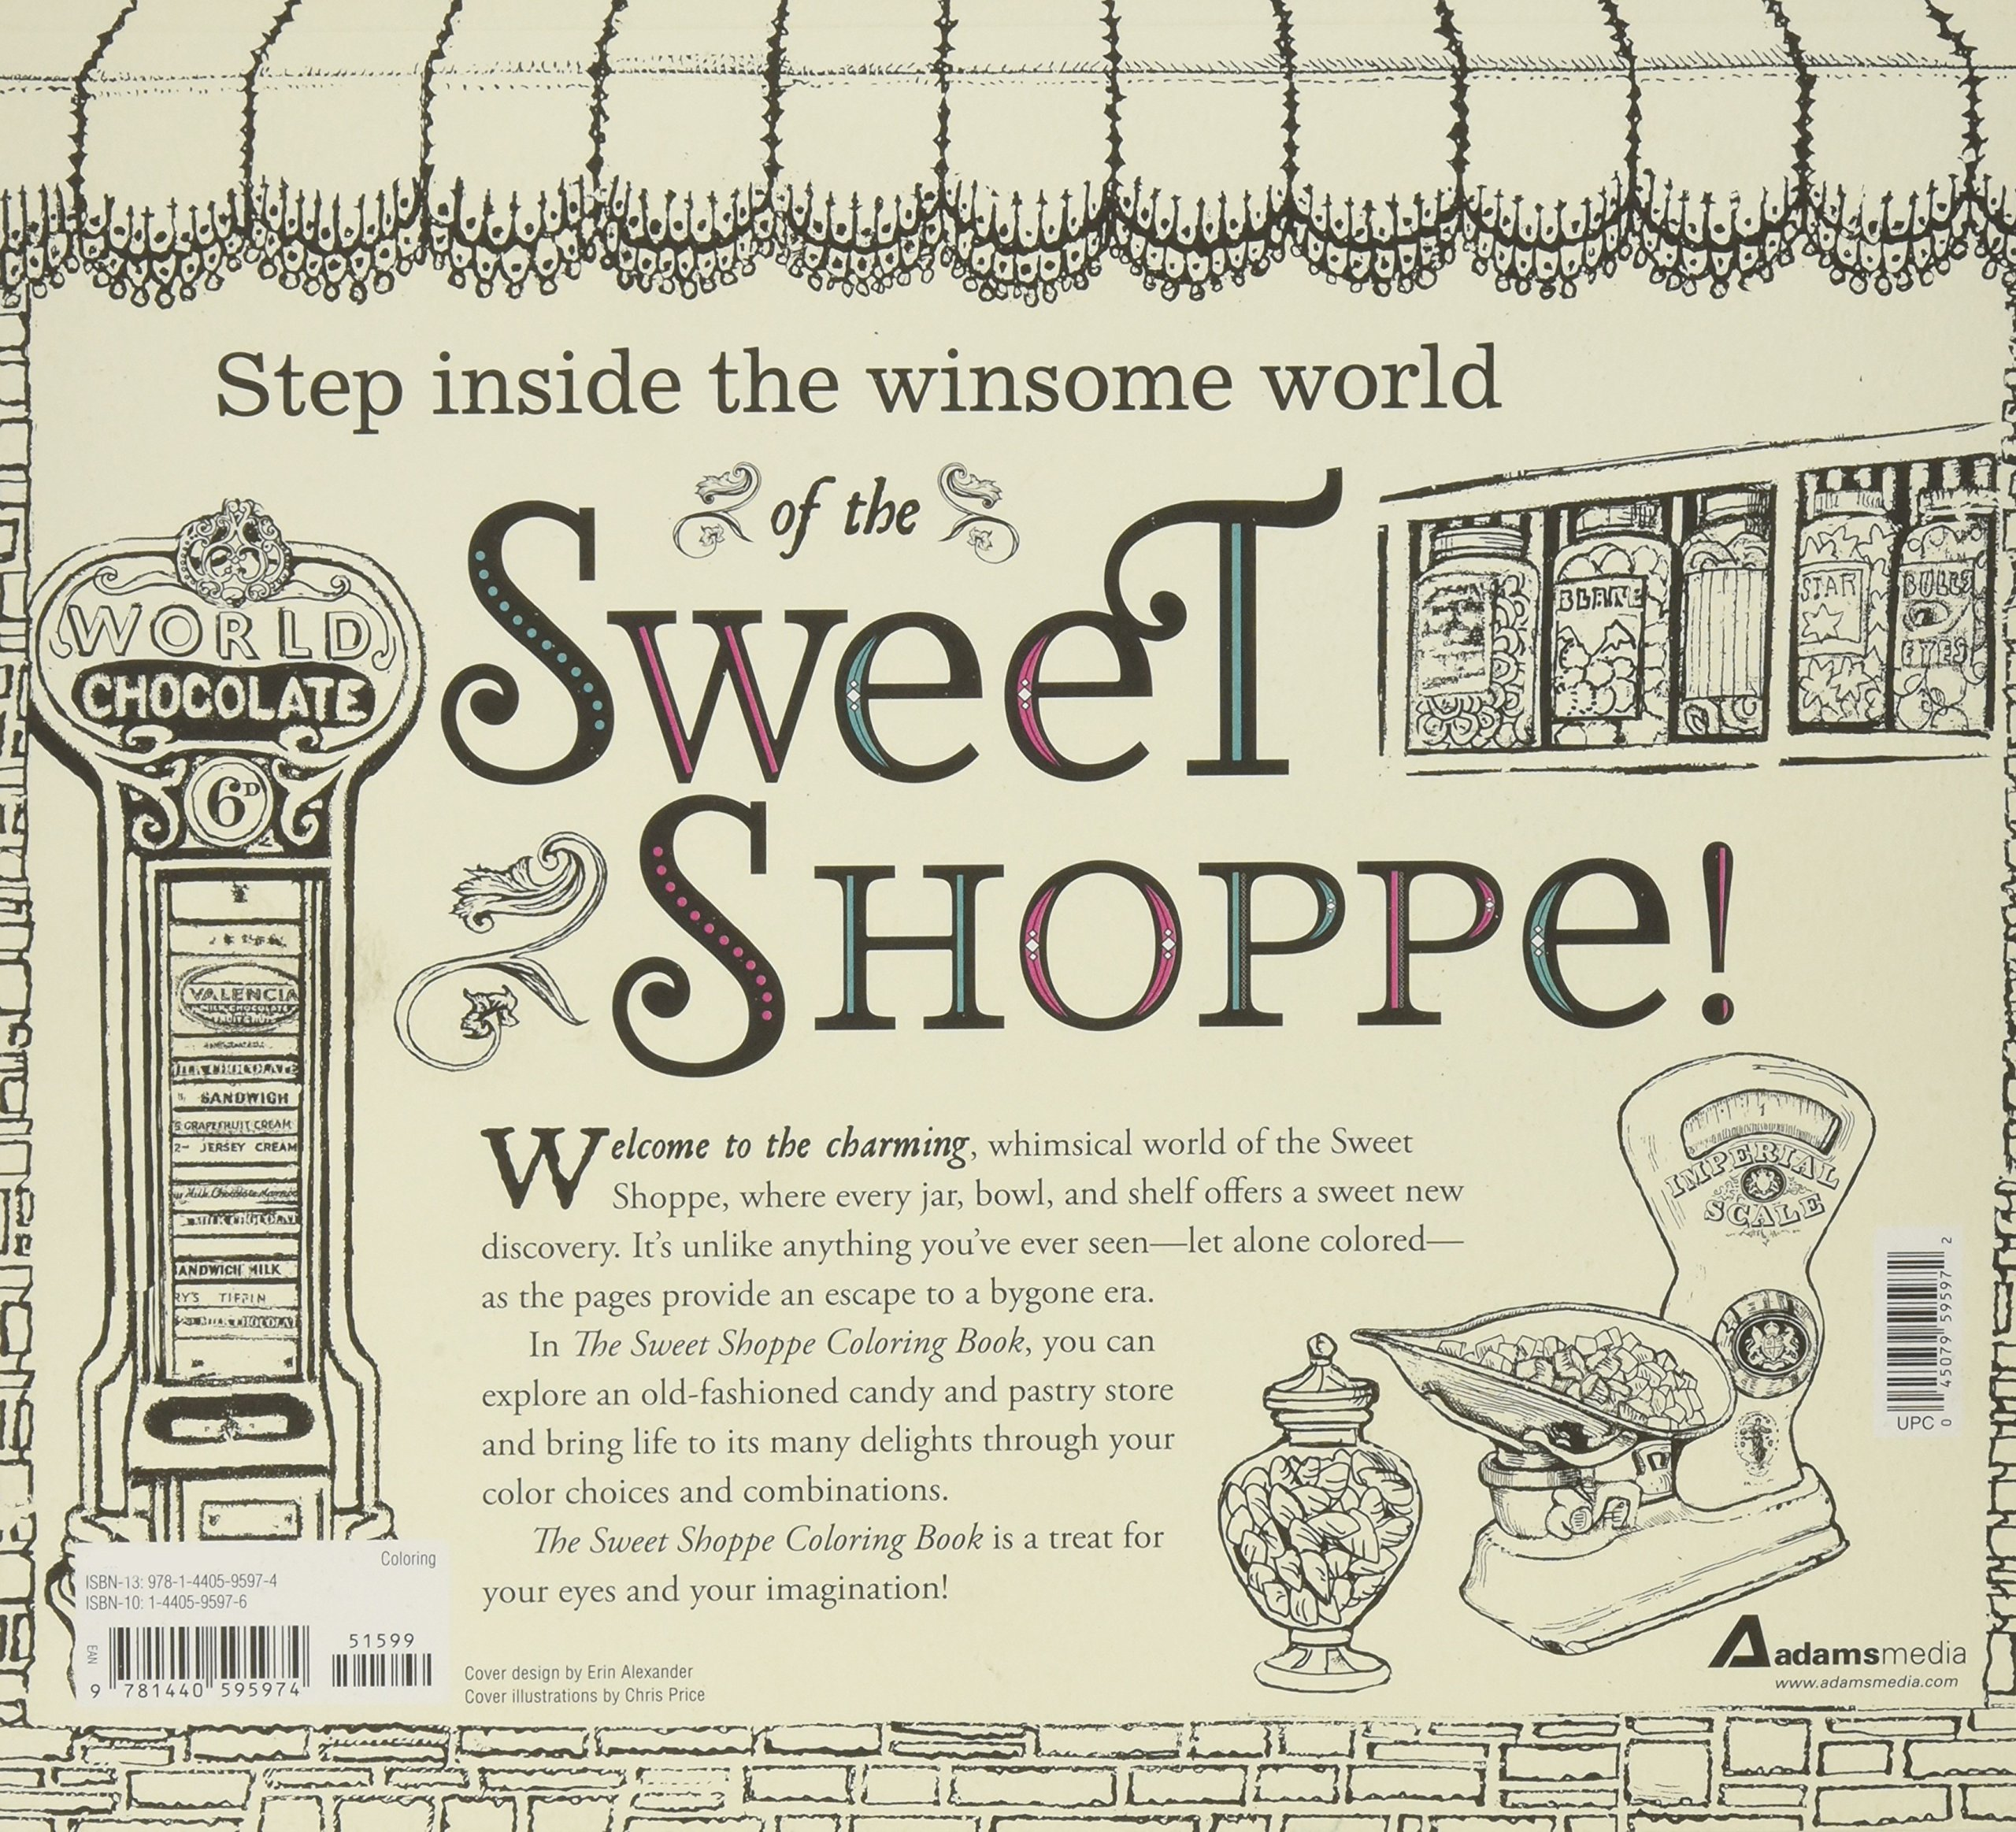 Amazon The Sweet Shoppe Coloring Book A Fantastical And Splendid Display Of Divine Confectionary Creation Exquisite Candied Delights